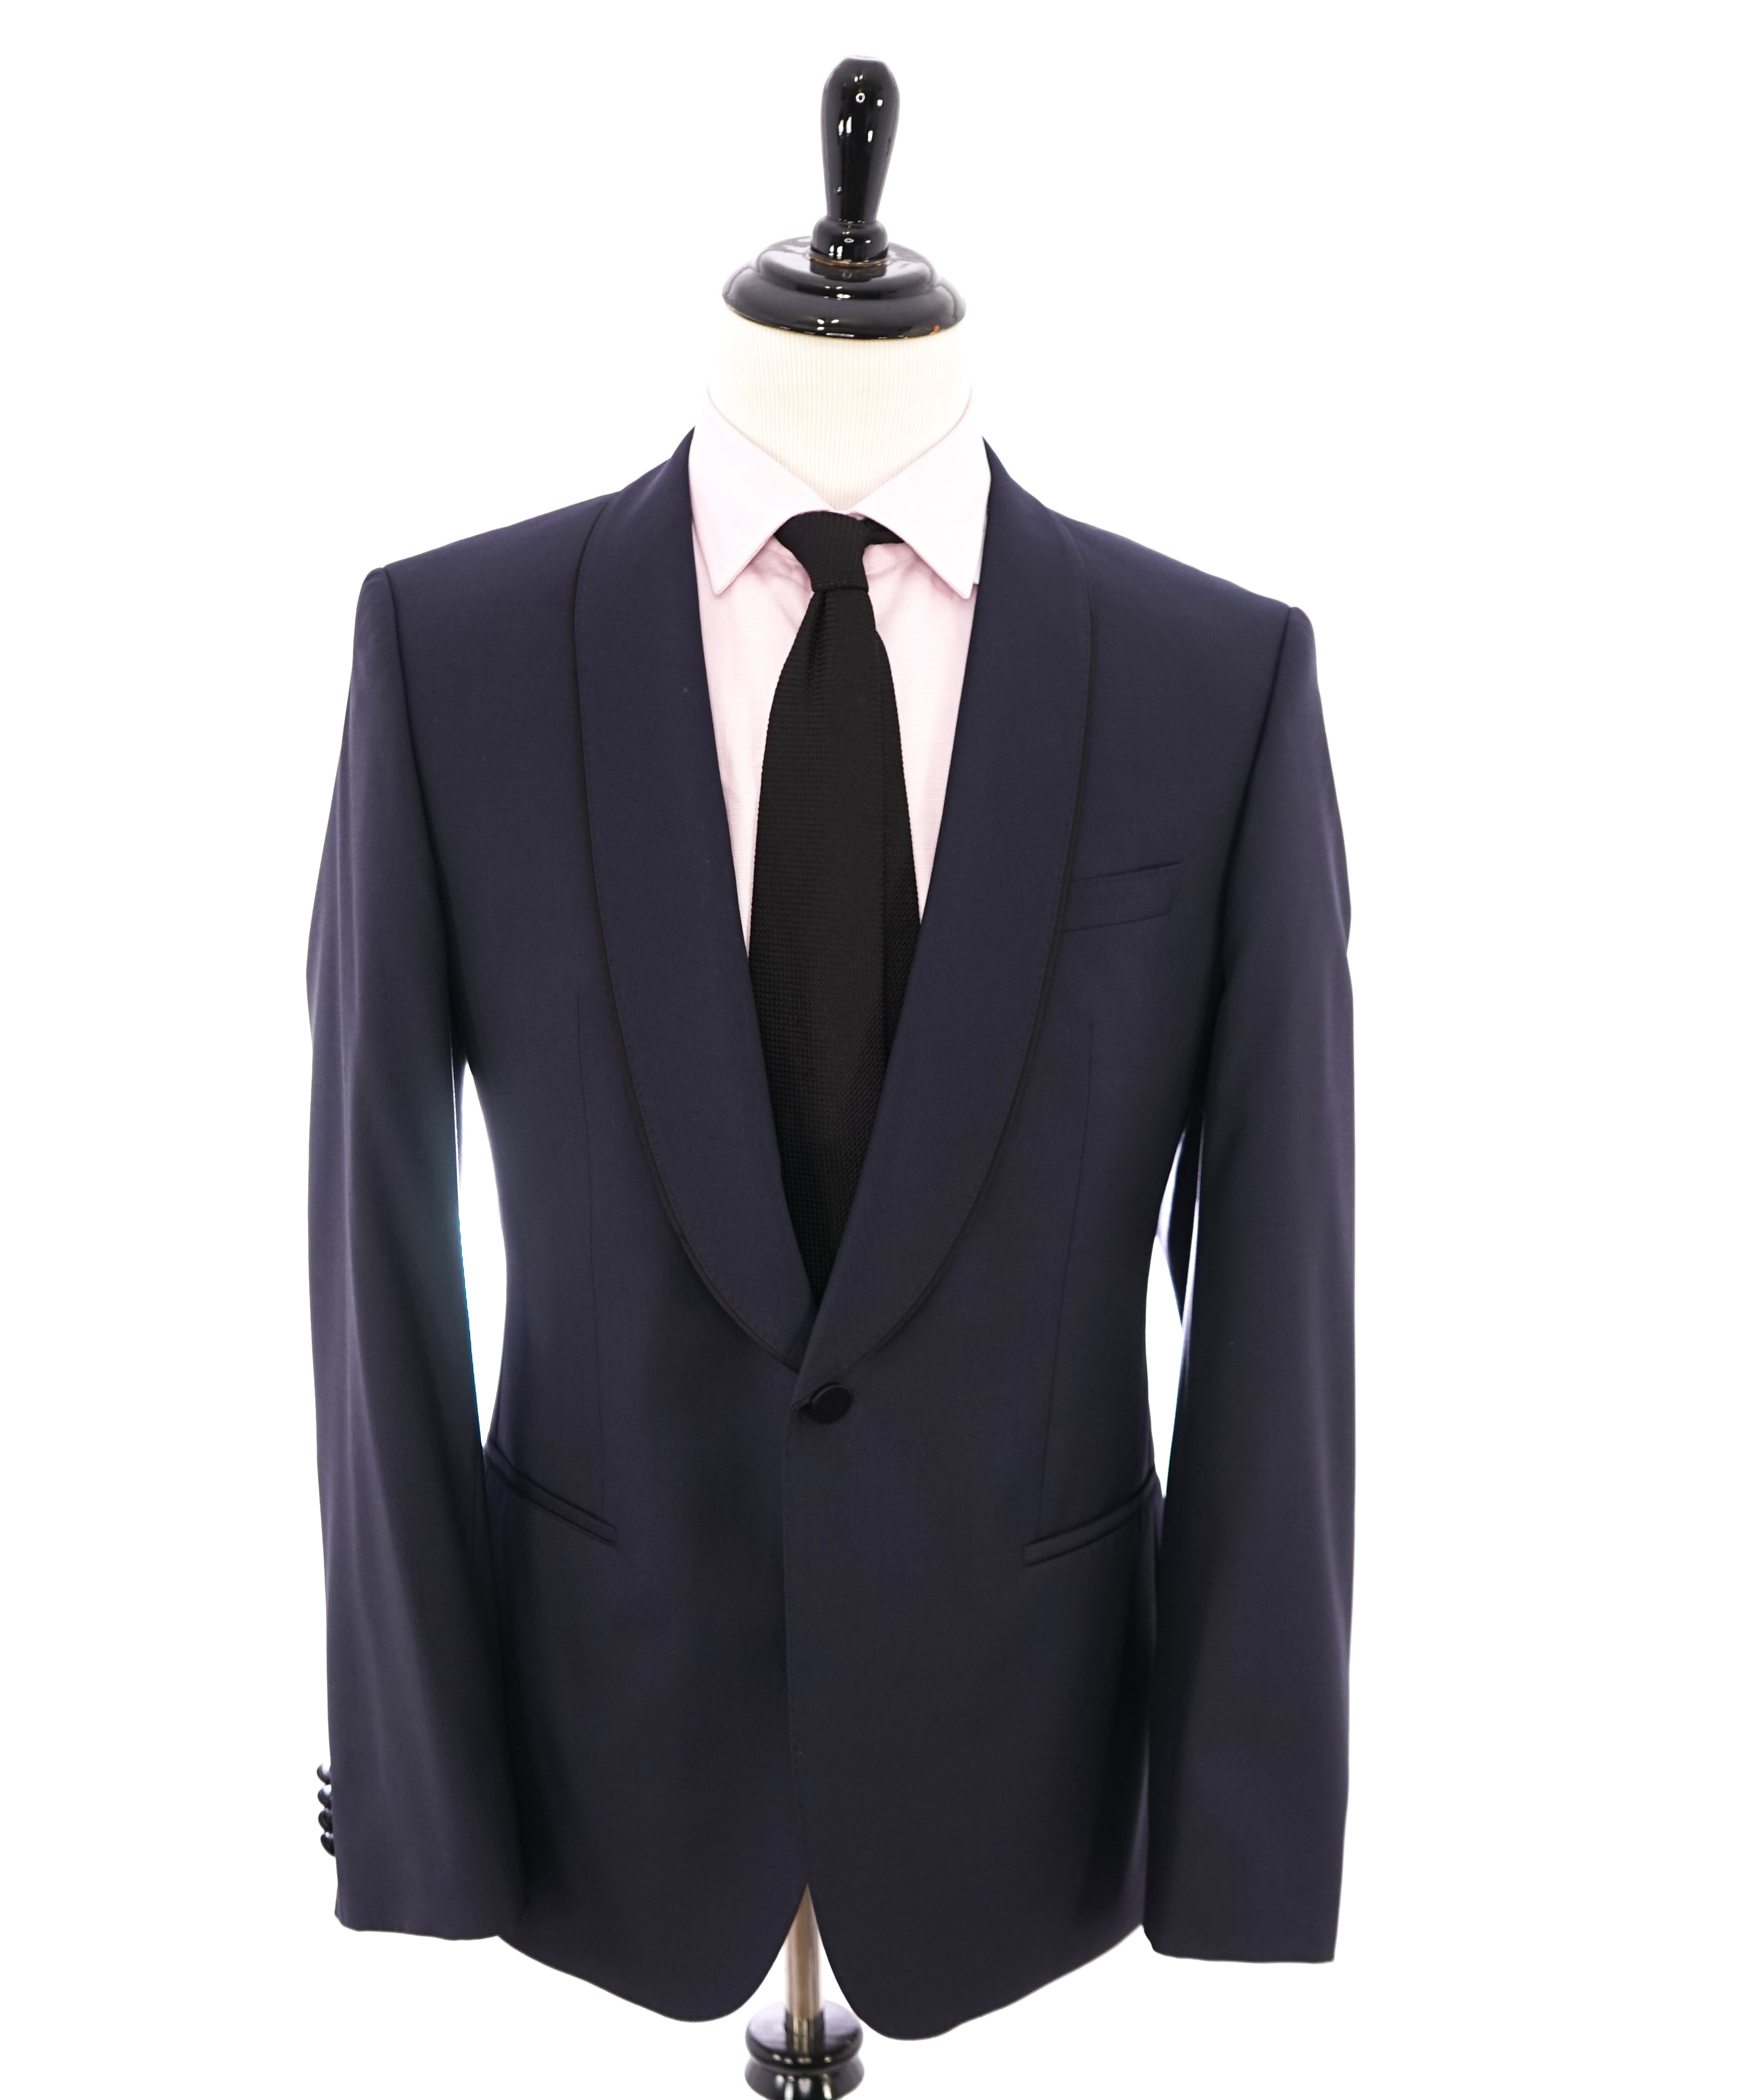 HUGO BOSS - Wide Shawl Collar Satin tipped 1-Button Blue Tuxedo Suit SILK - 42R